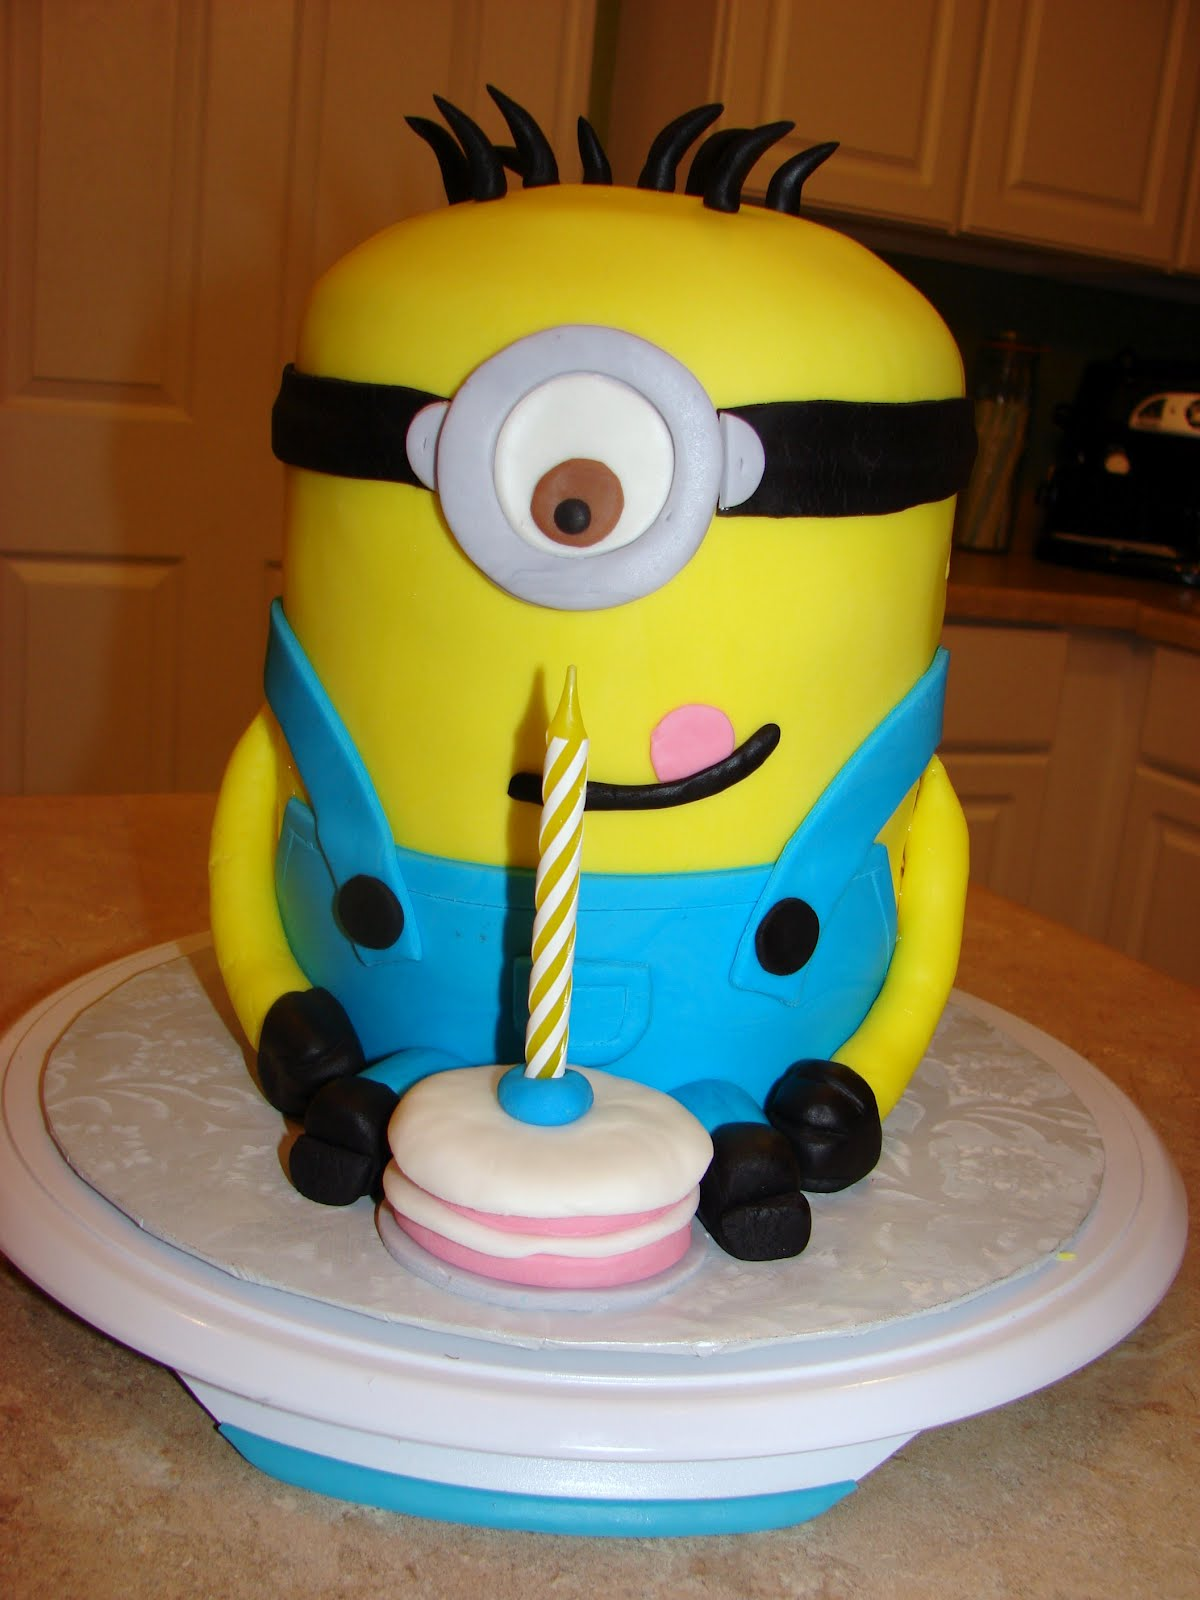 Images For Minions Birthday Cake : Ipsy Bipsy Bake Shop: Minion Cake!!